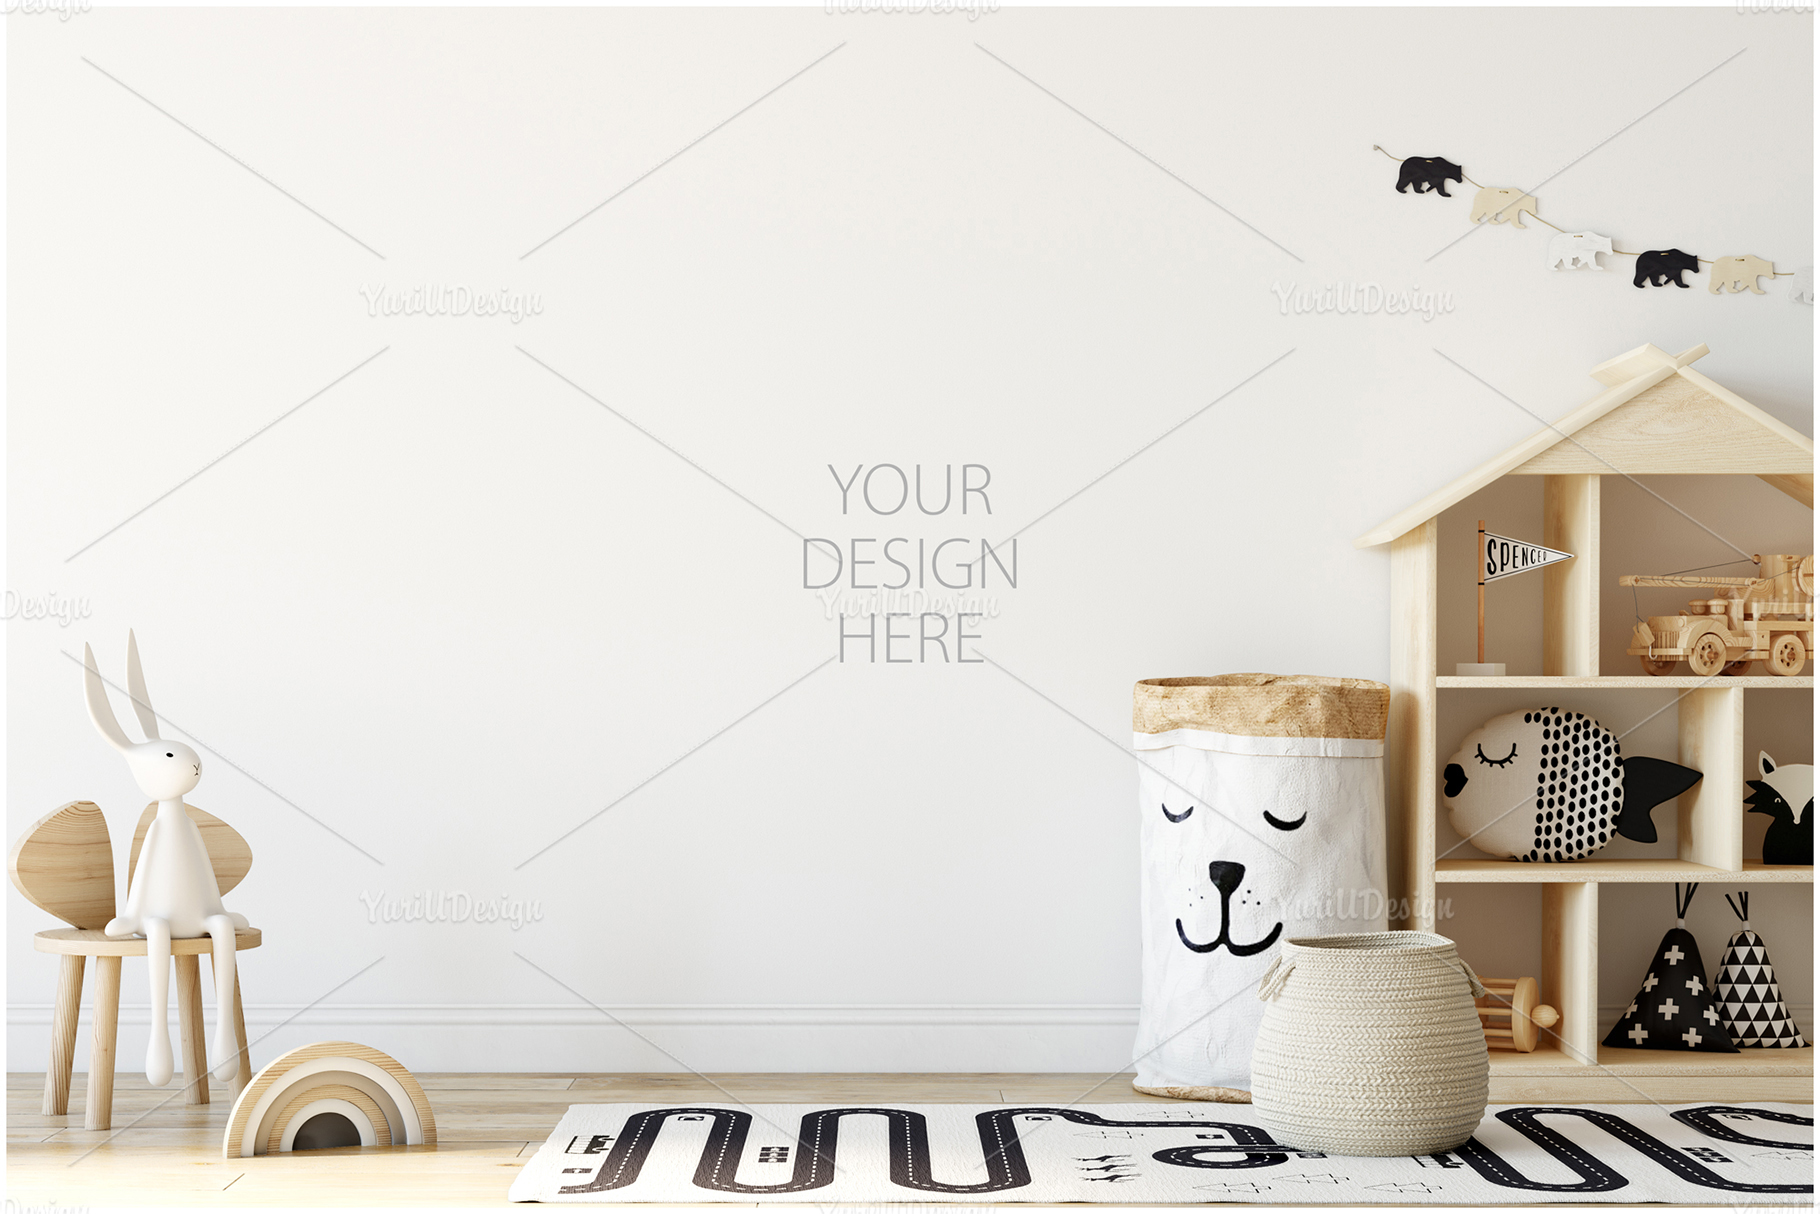 Kids Frames & Wall Mockup Bundle - 5 example image 9